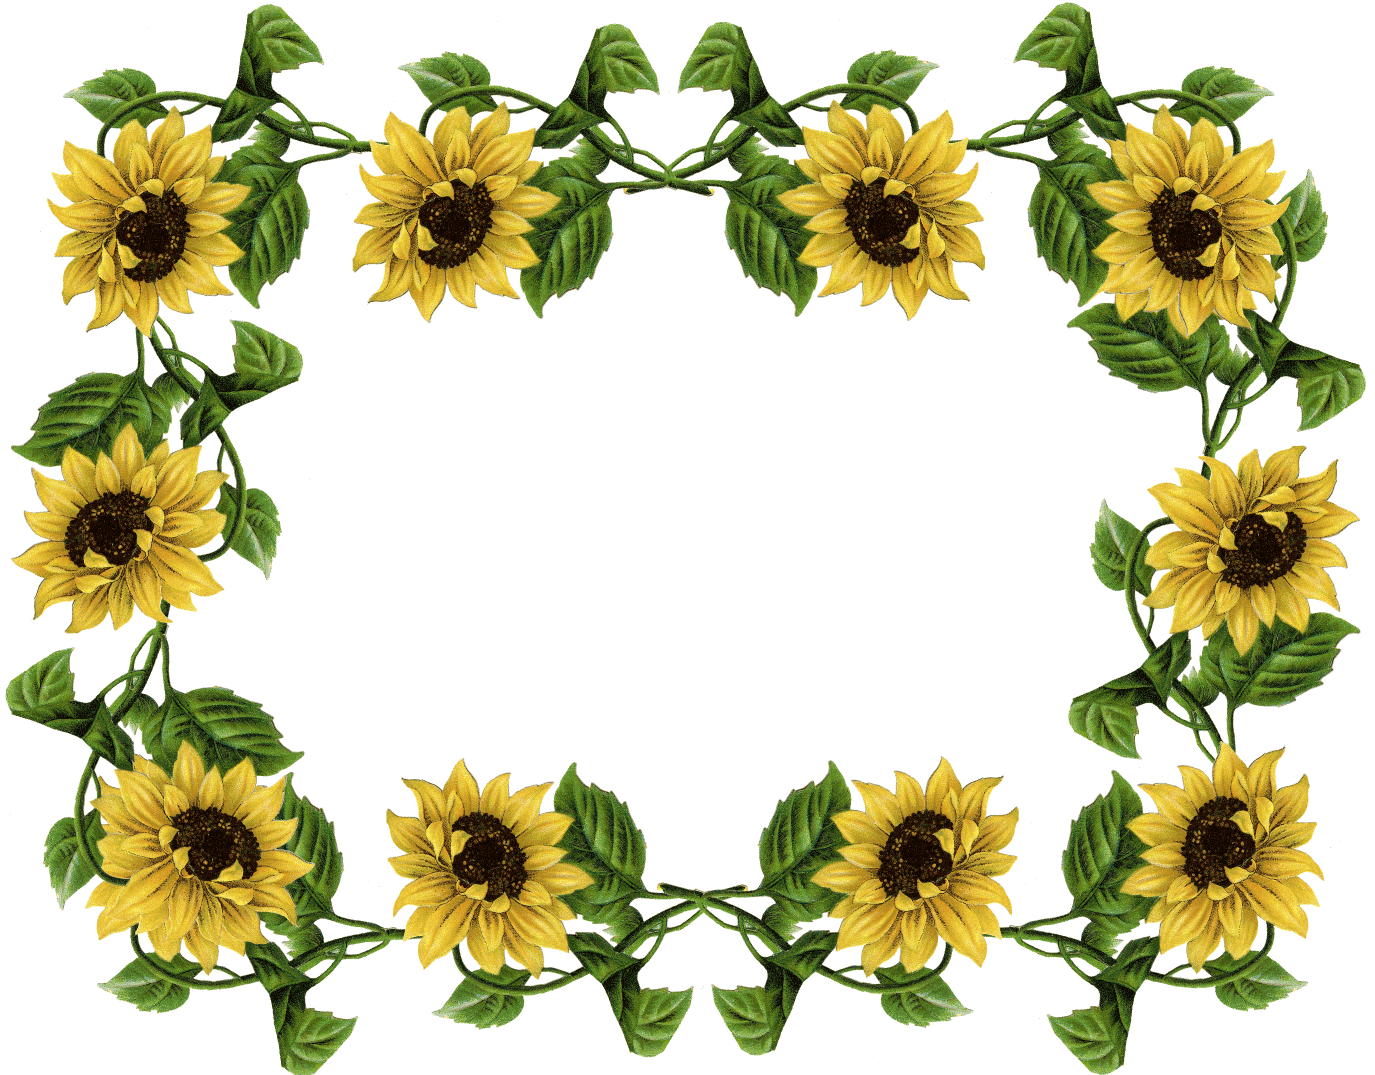 Seed and sun clipart vector free sunflower pics frame | sunflowers | Pinterest | Borders free ... vector free